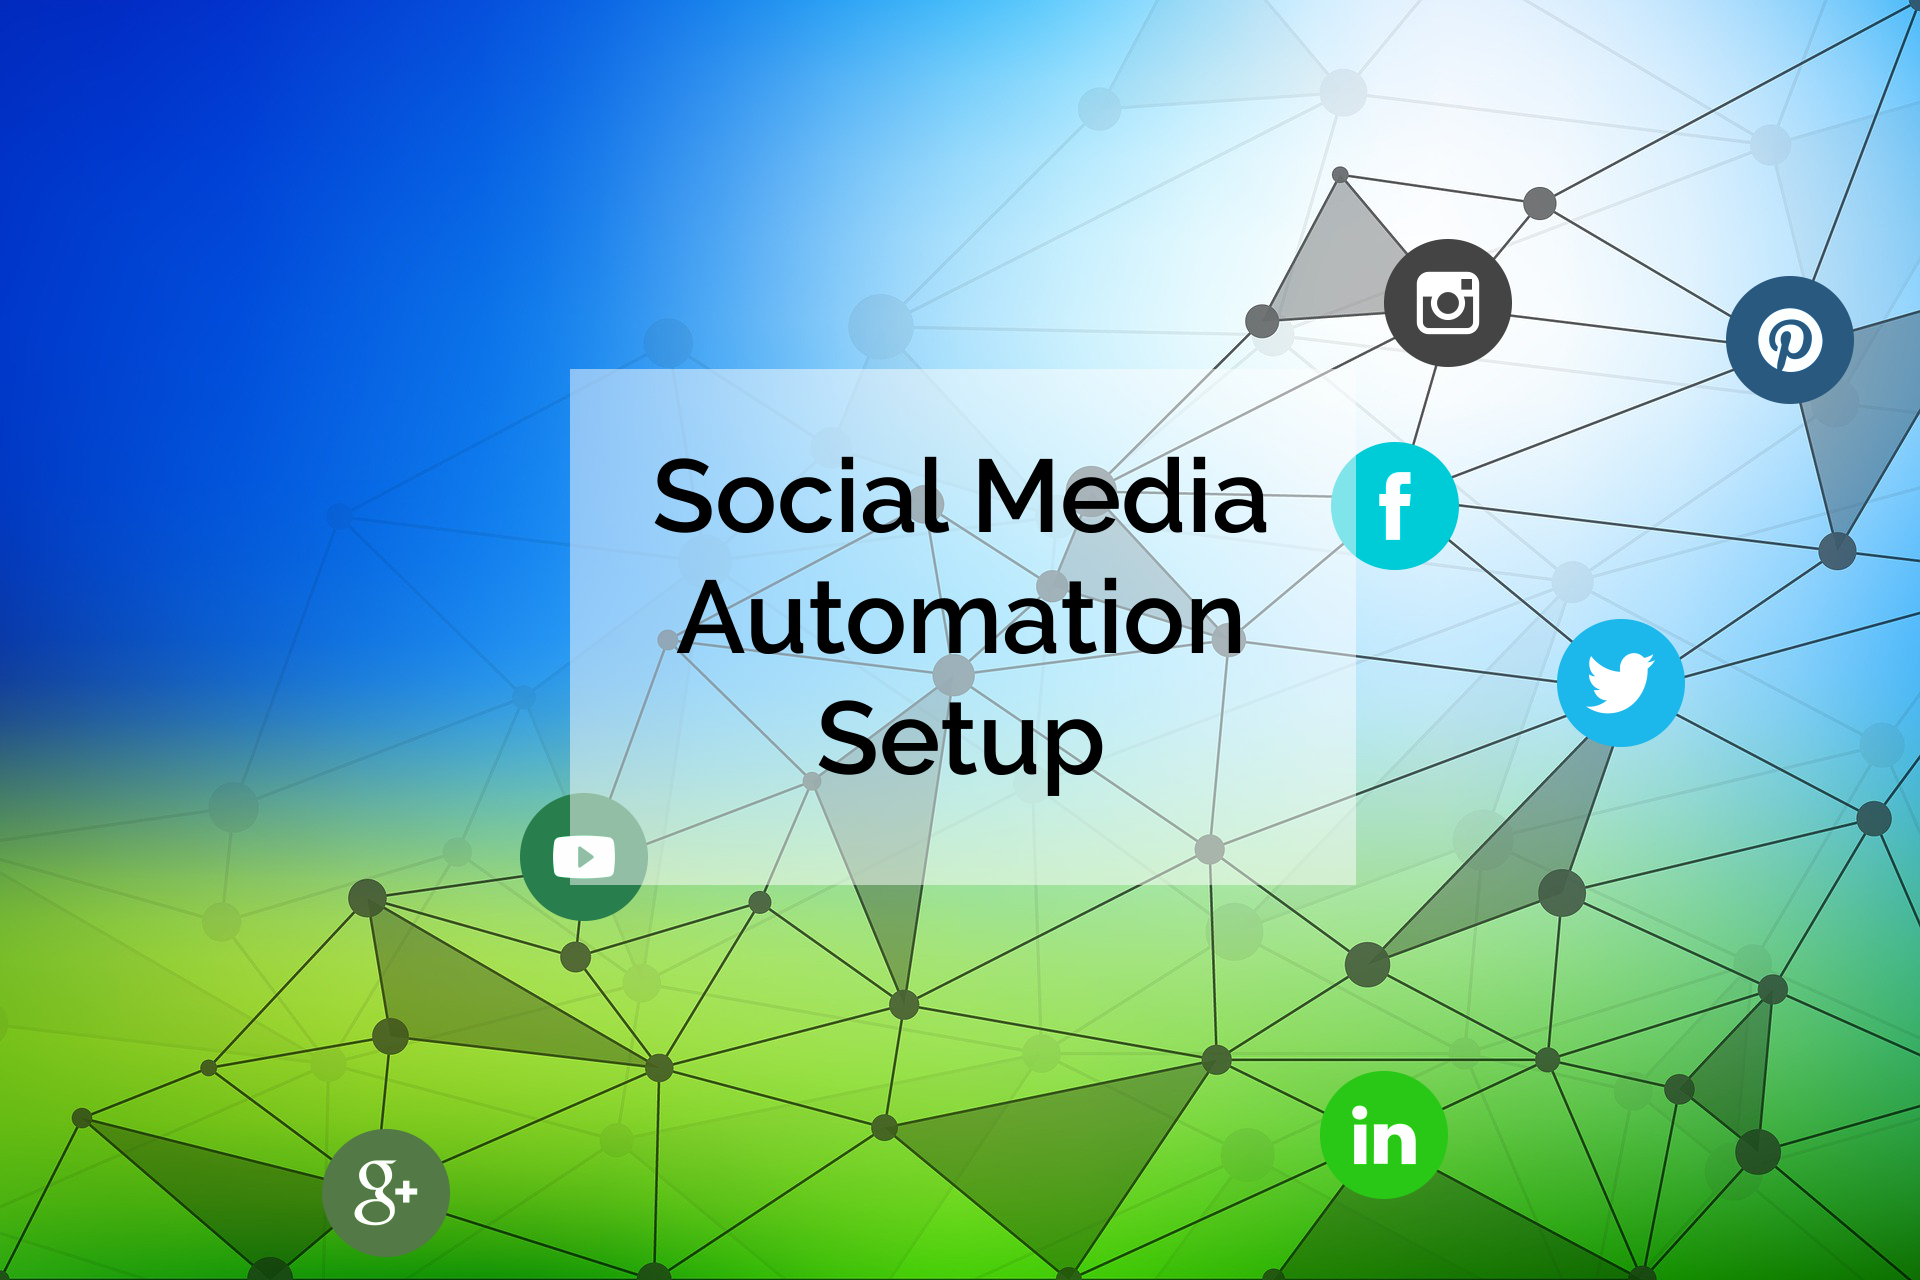 Social Media Automation Setup is included with Smart Site.